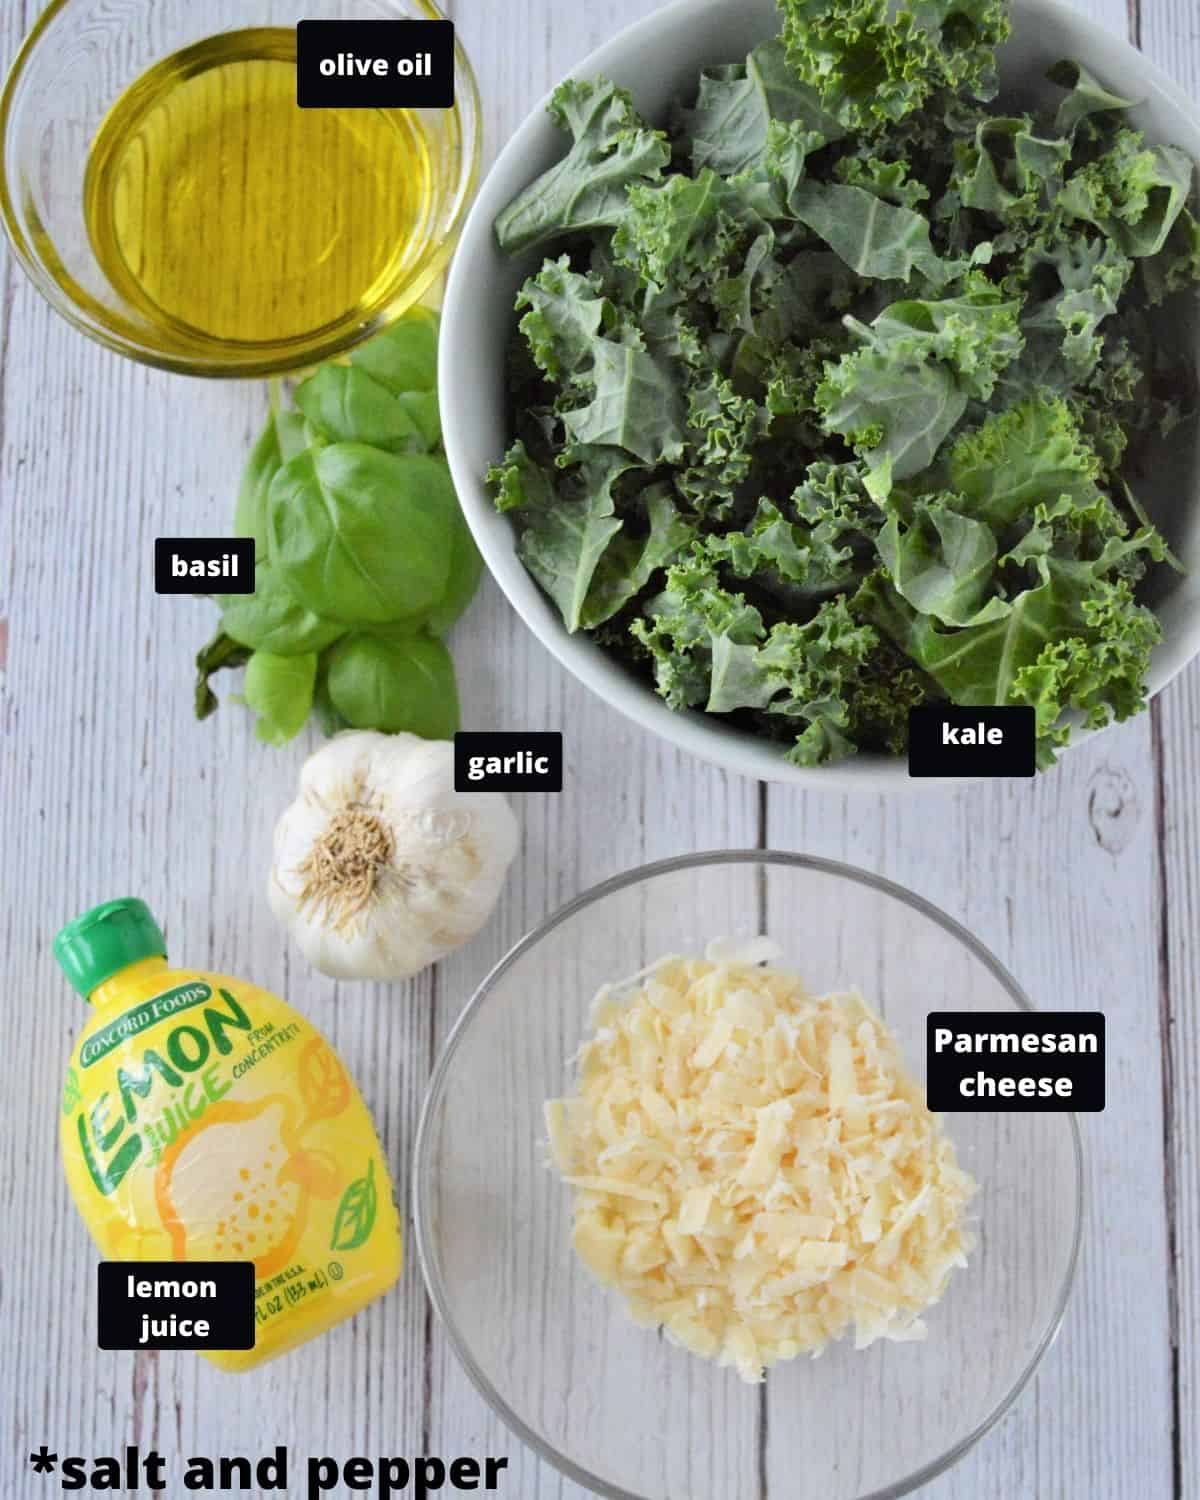 Ingredients on a white wooden table lemon juice, olive oil, Parmesan cheese, kale, basil, and garlic.